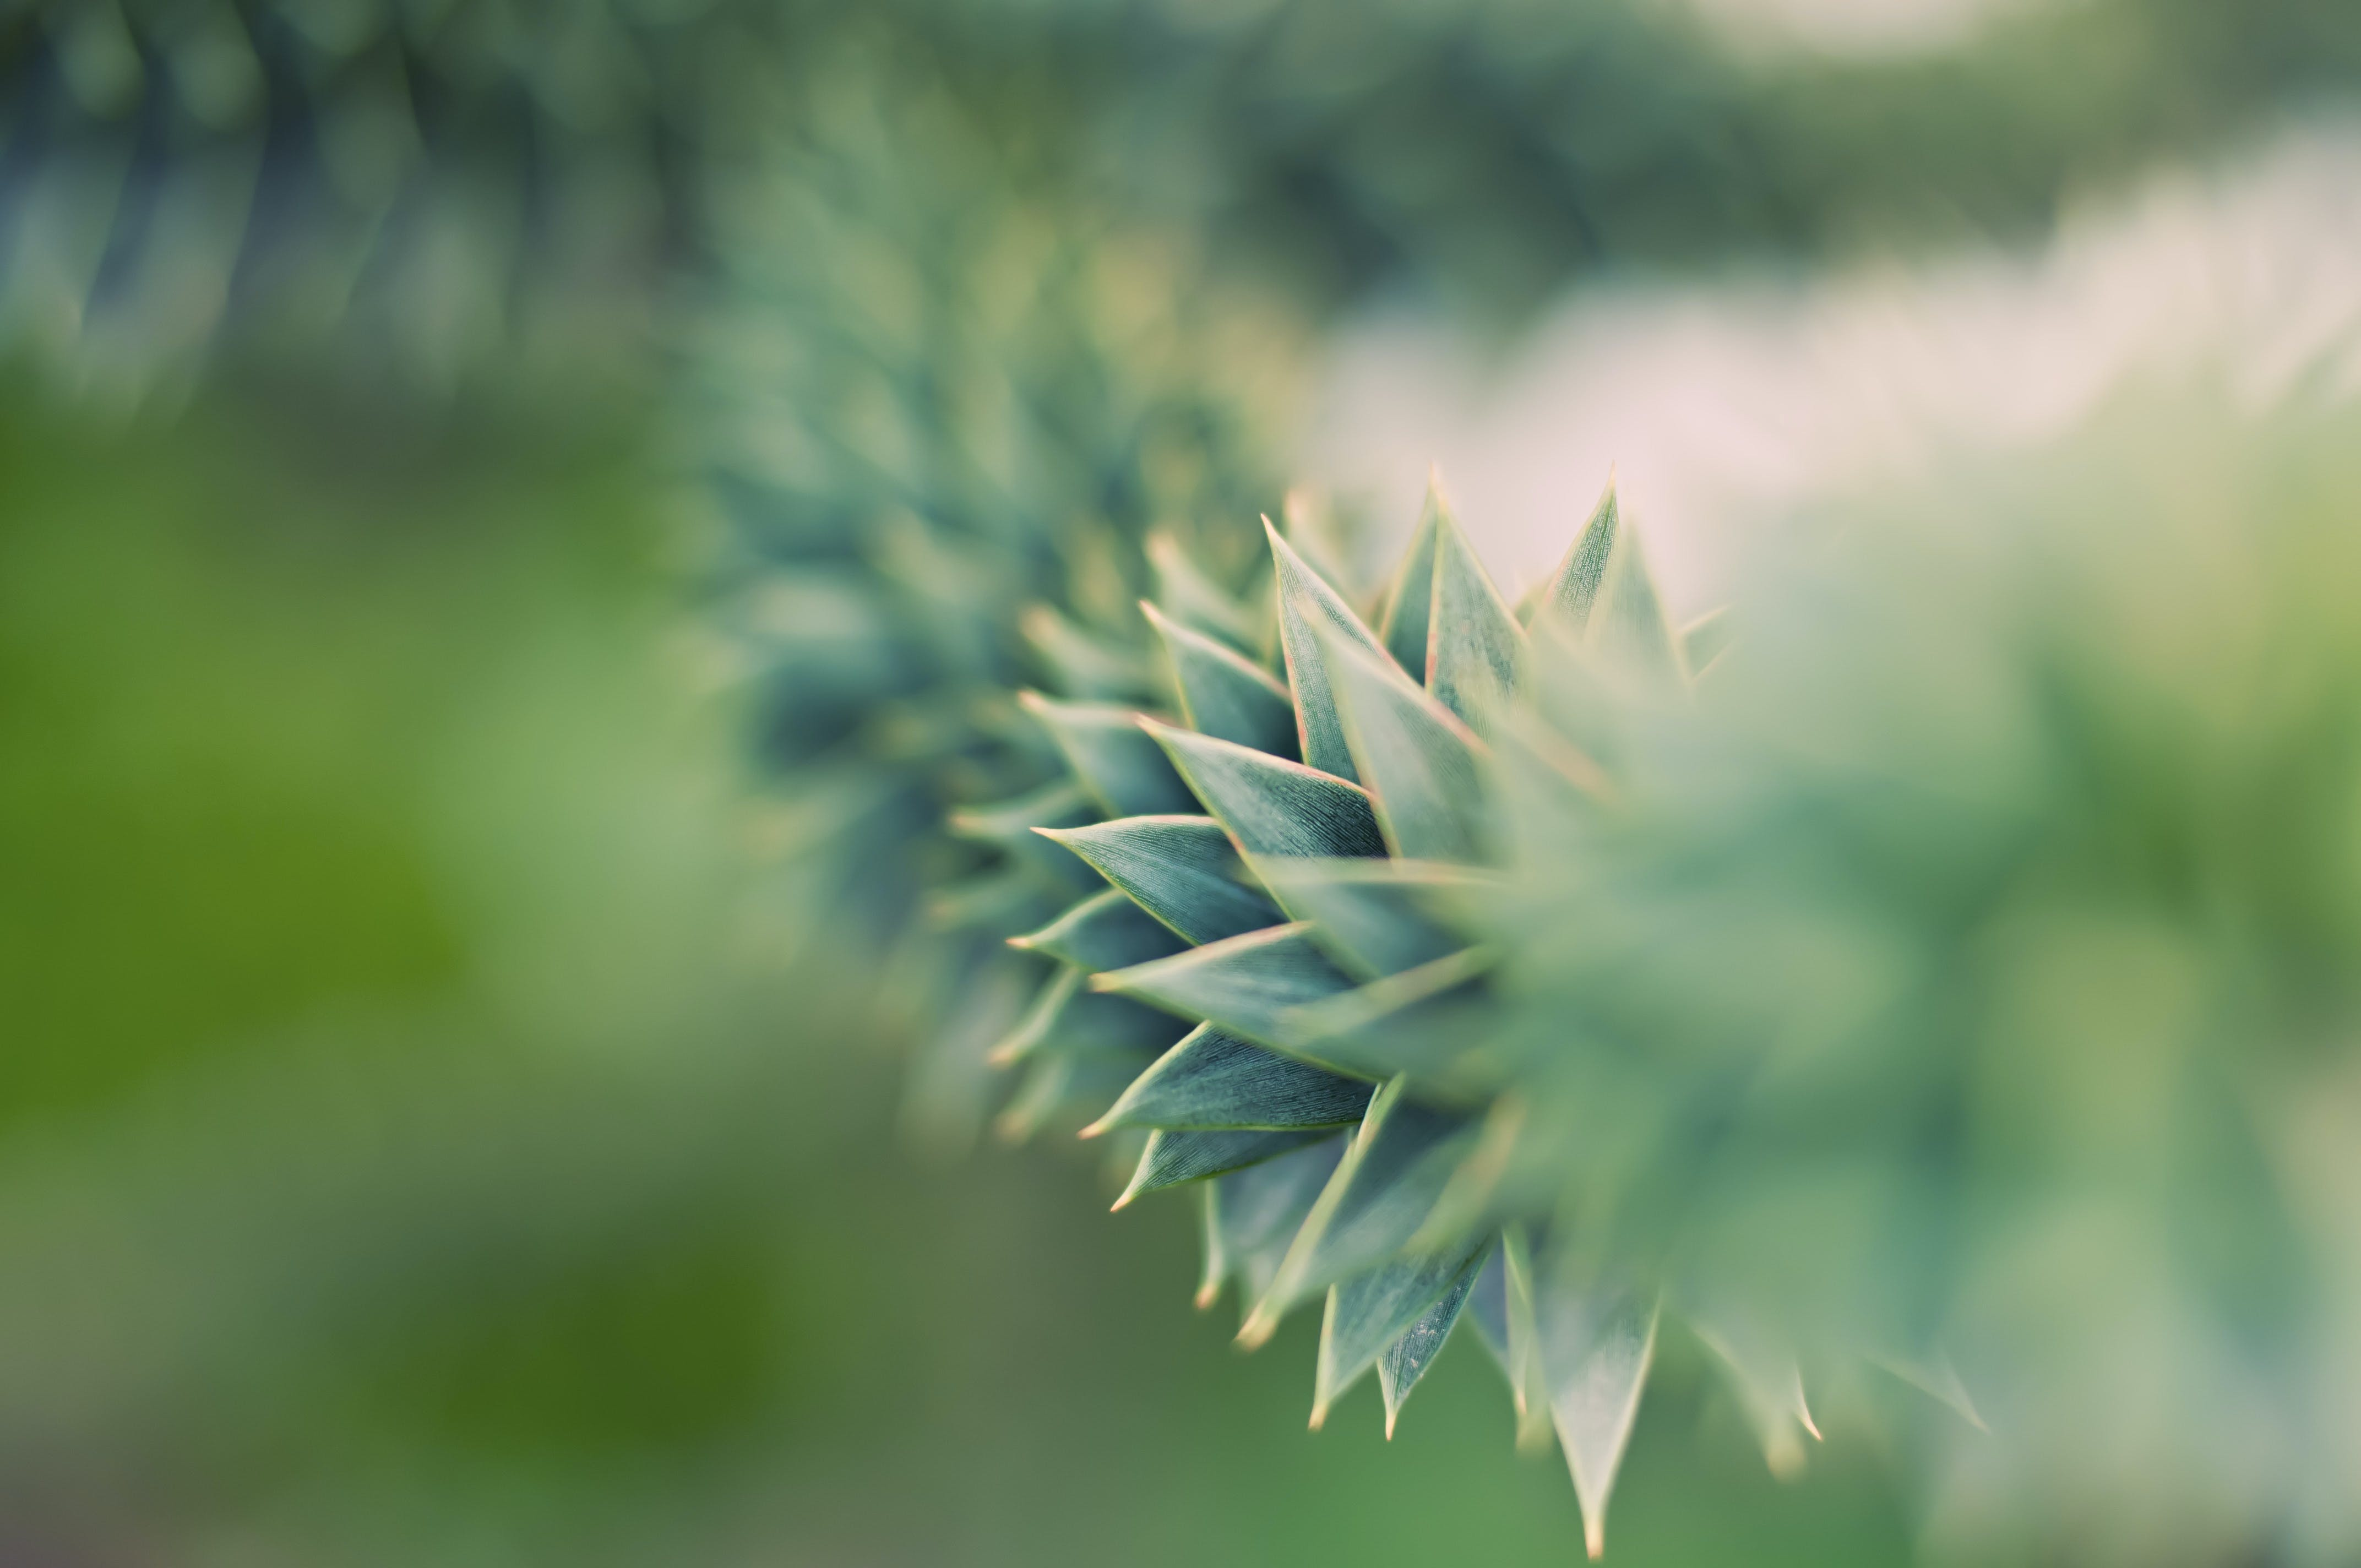 Green Succulent Plant in Close Up Photography